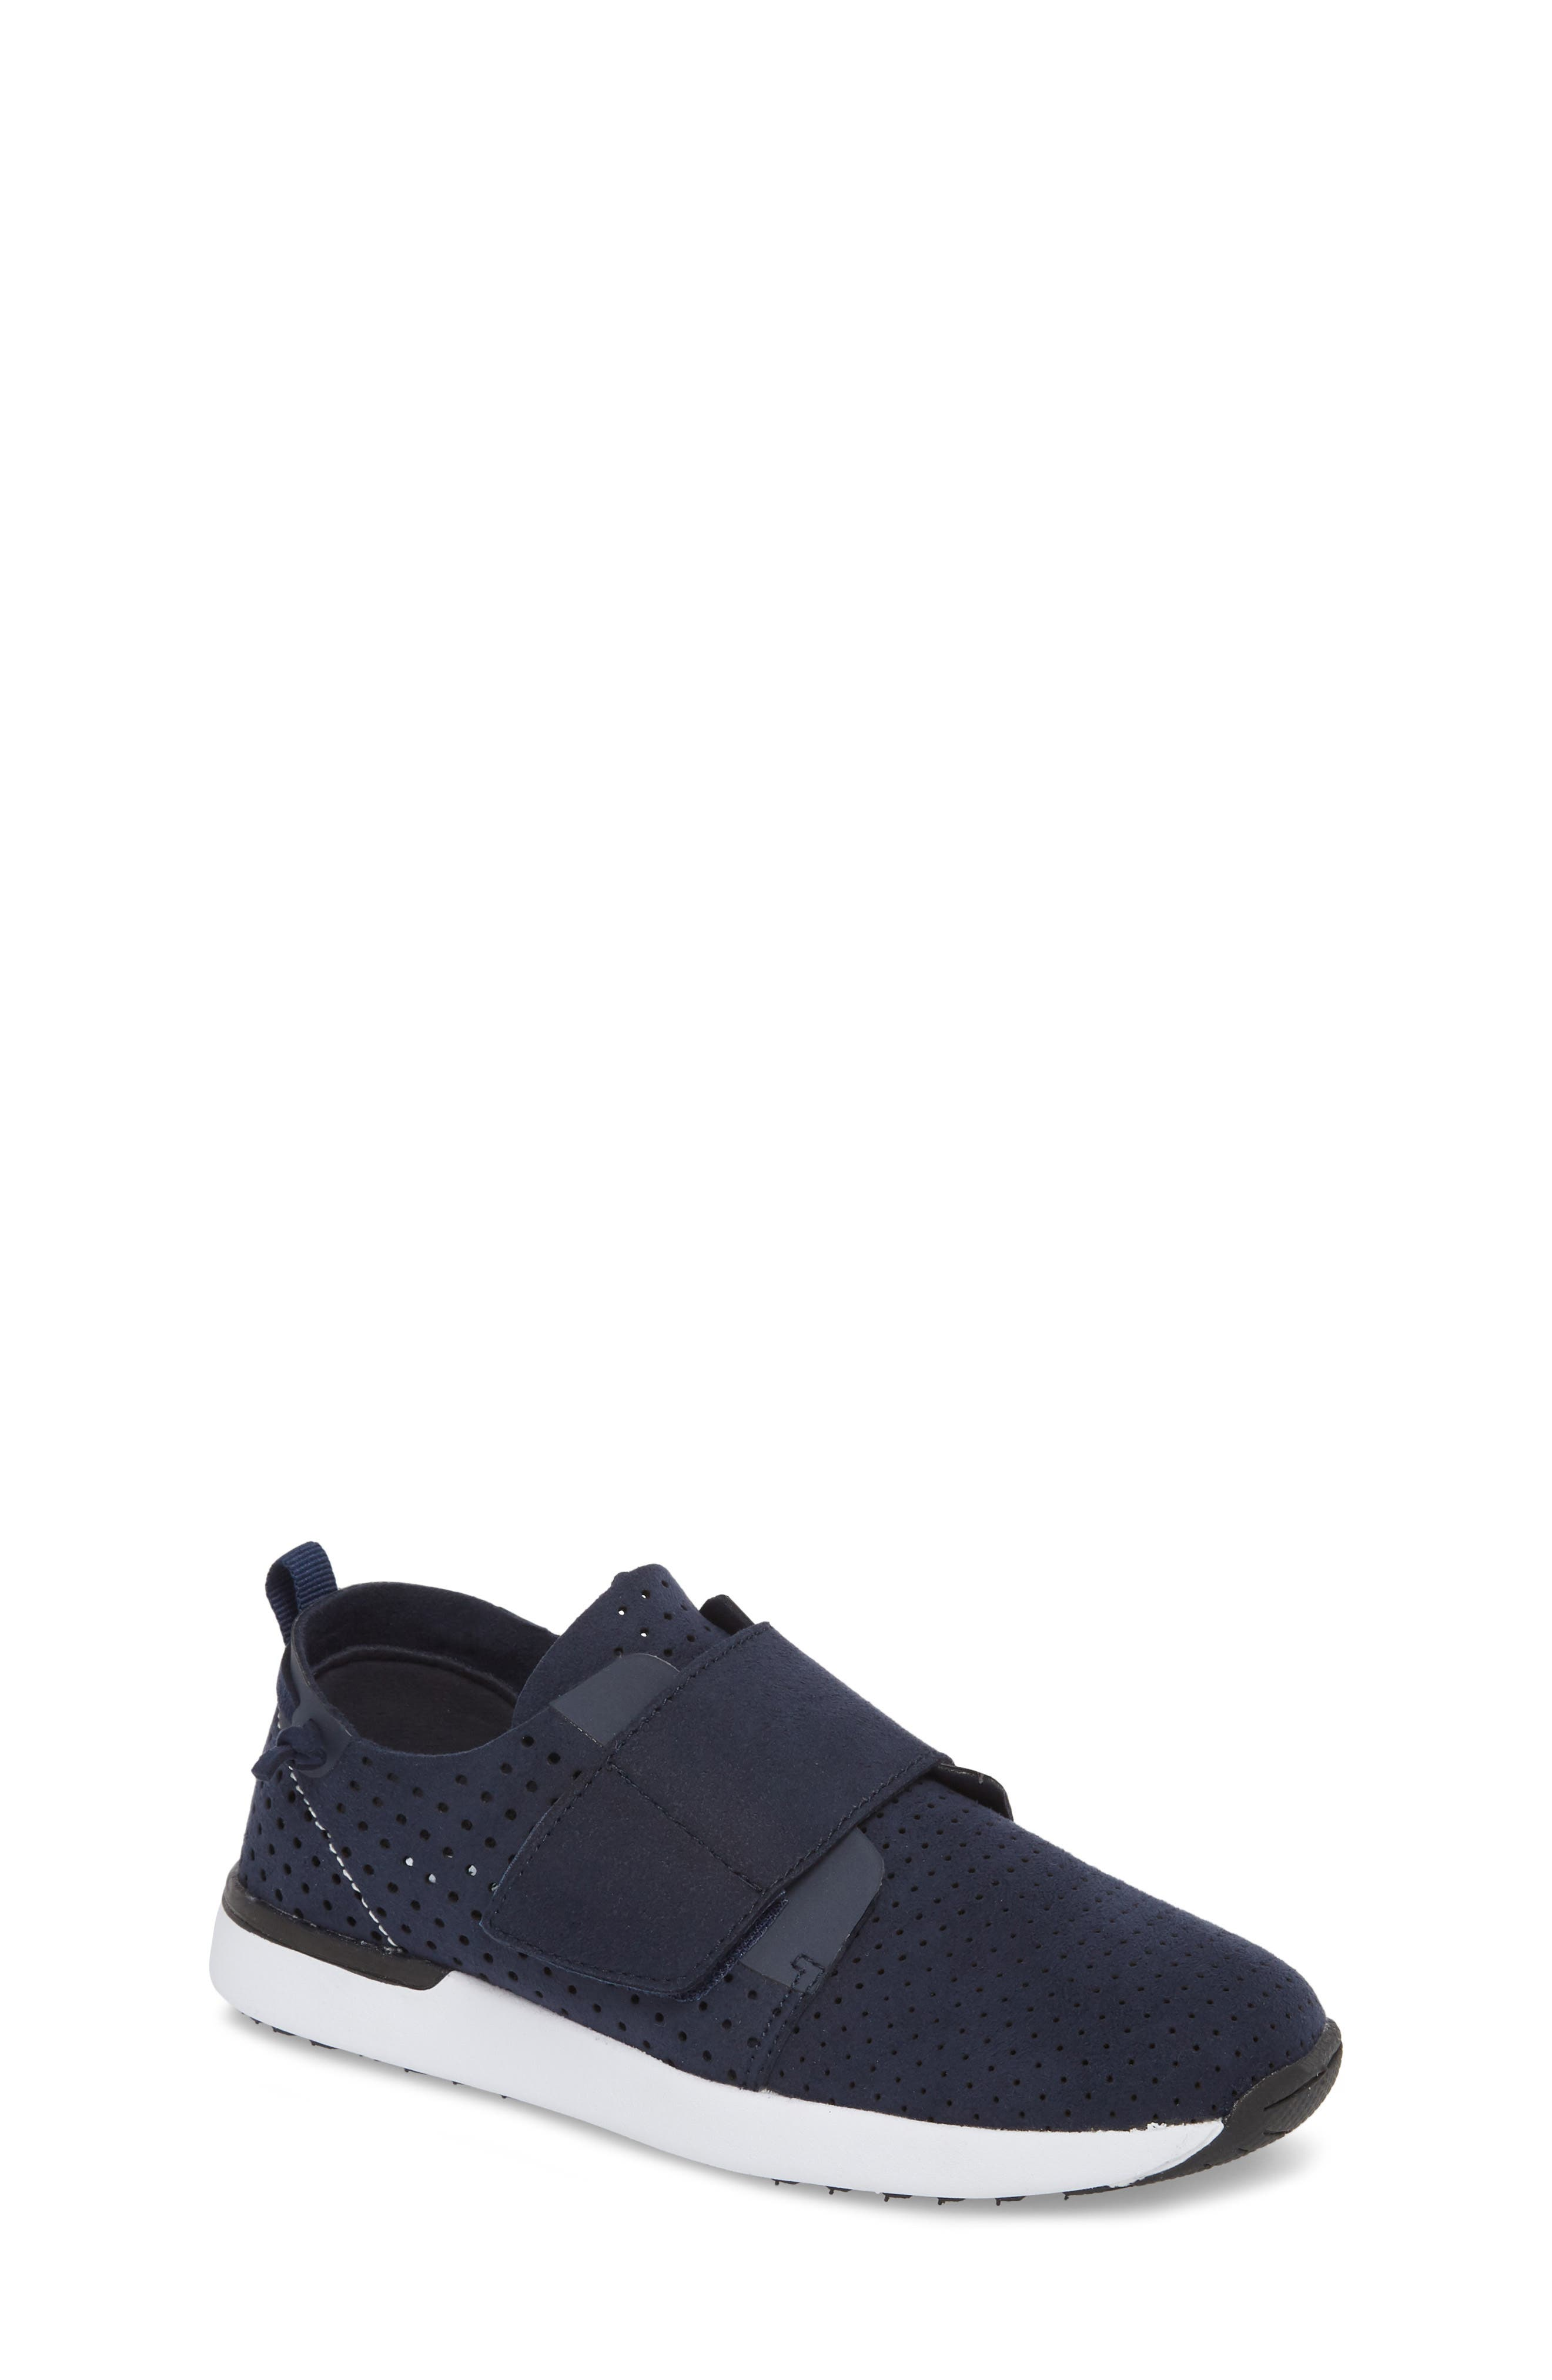 Brixxnv Perforated Sneaker,                         Main,                         color, NAVY